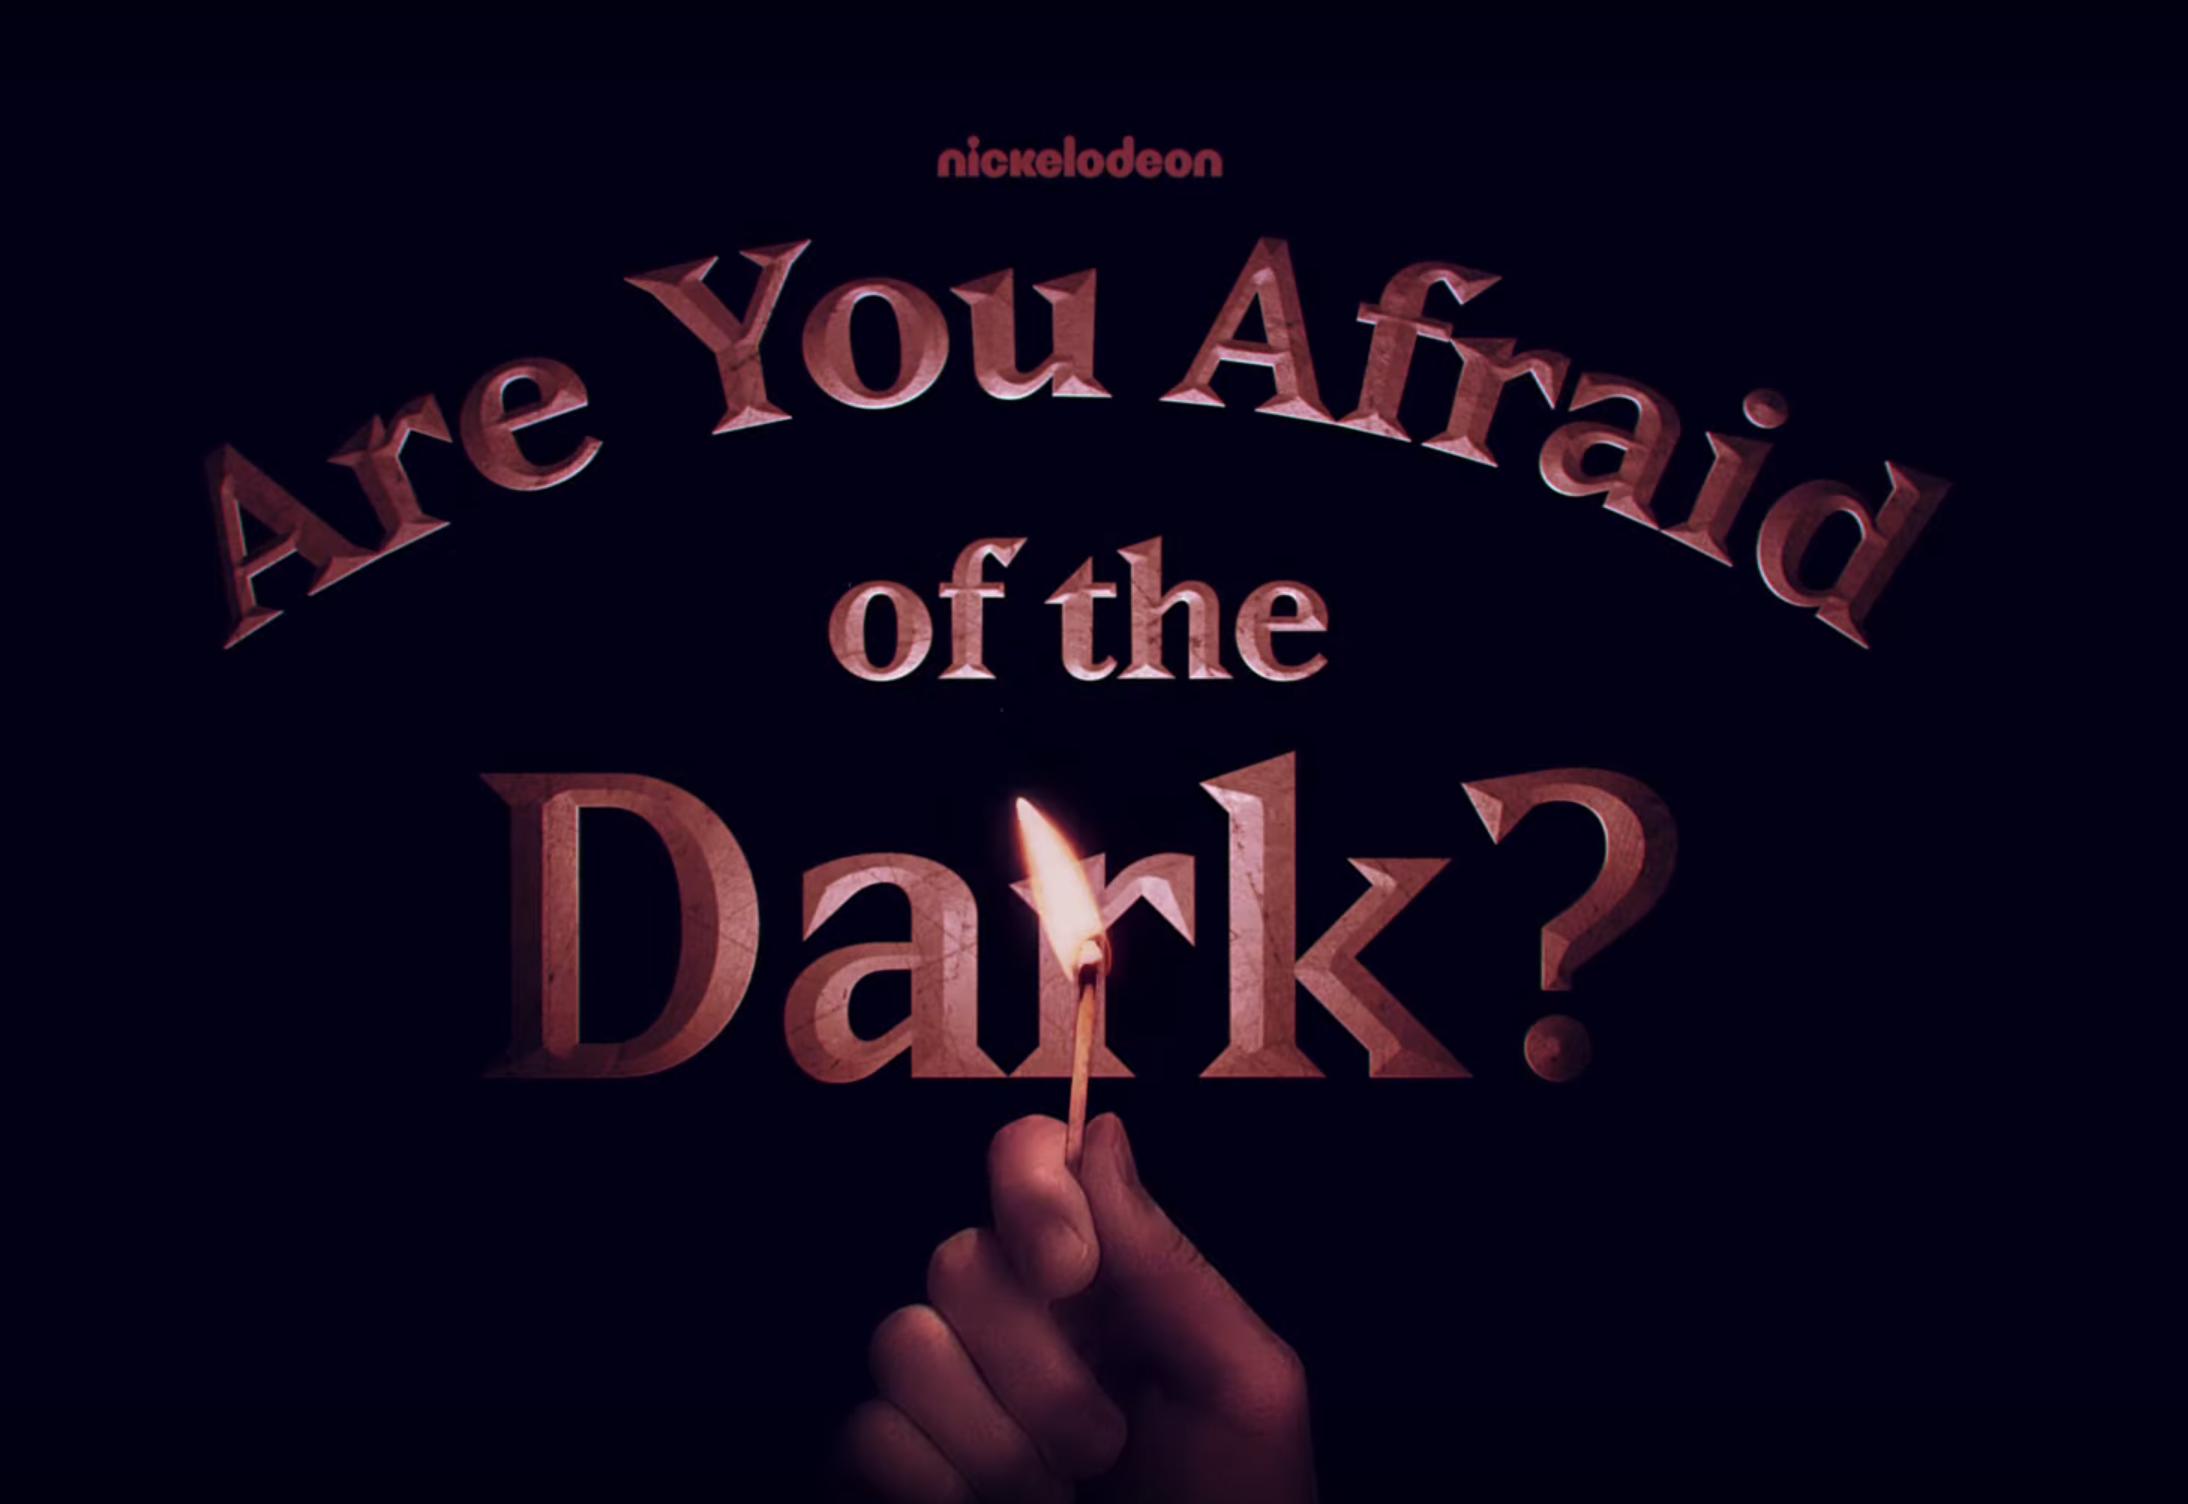 Submitted for the approval of the Midnight Society: The first full trailer for the <em>Are You Afraid of the Dark?</em> reboot